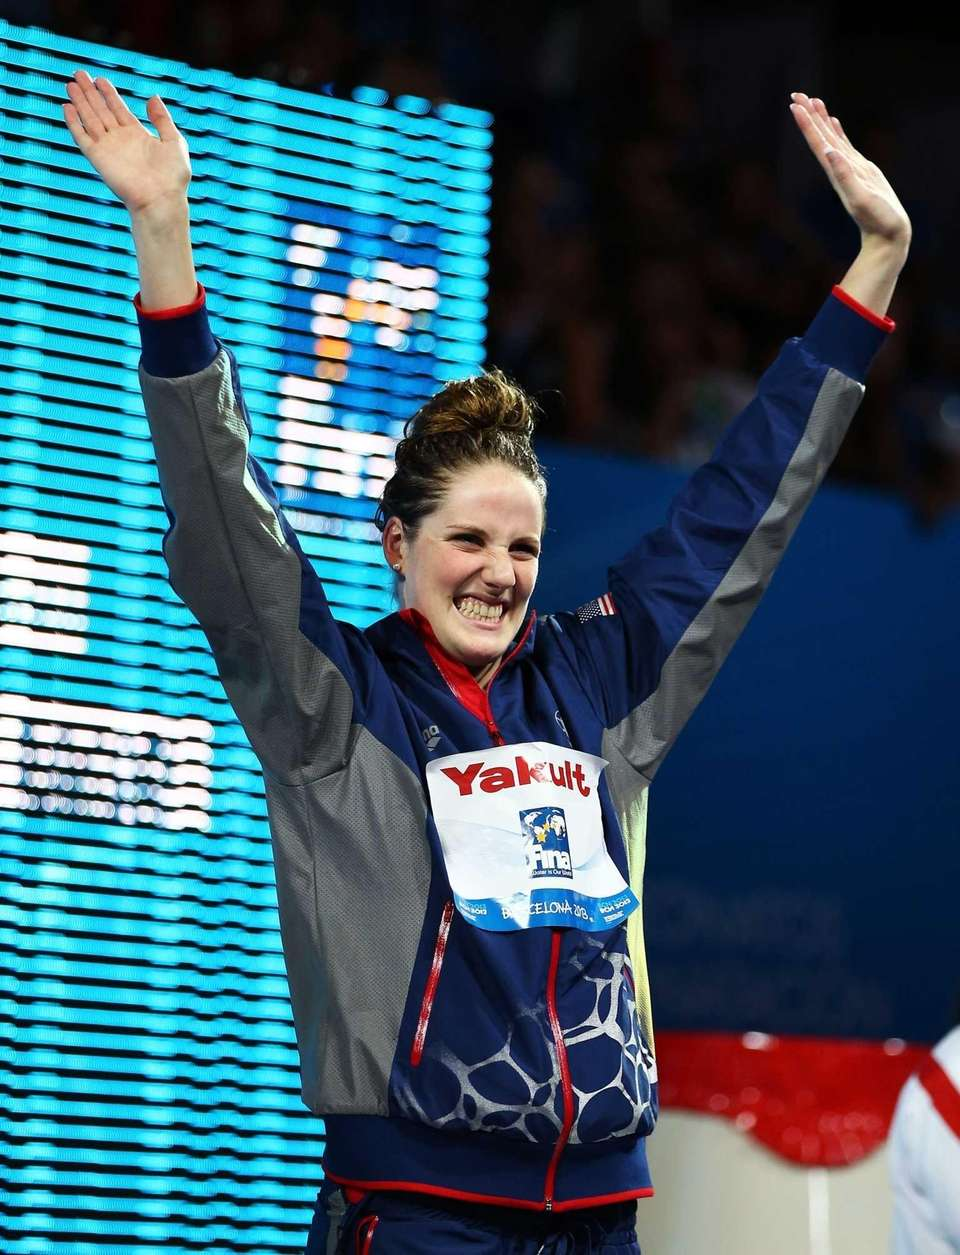 Gold medal winner Missy Franklin of the United